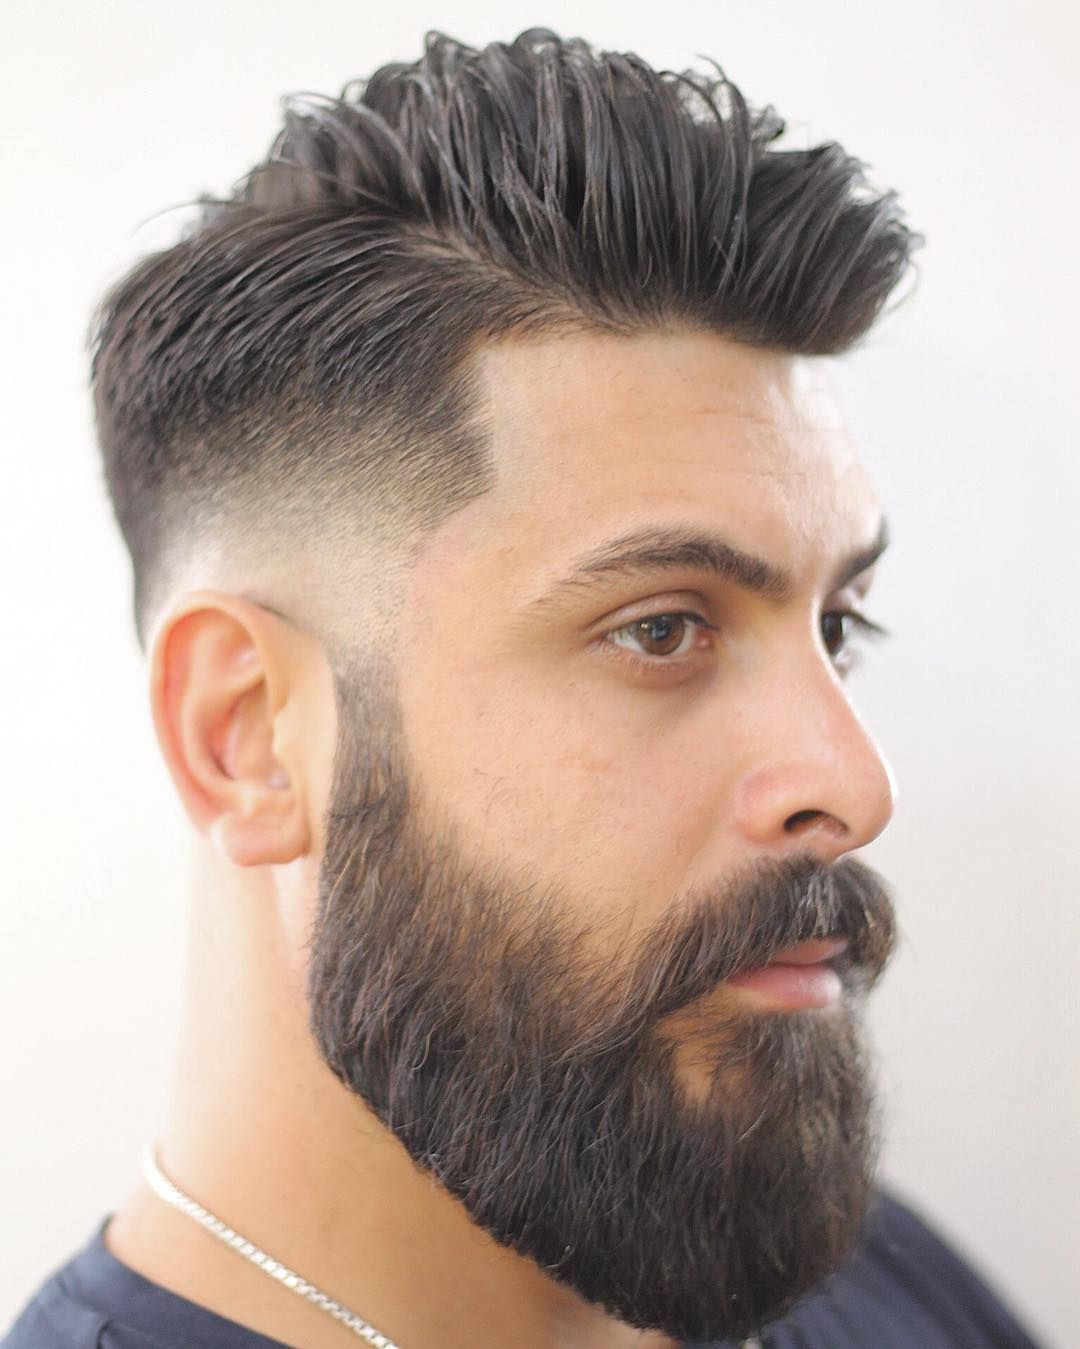 Haircut styles for men fades  novos cortes de cabelo masculino de   fade haircut haircut